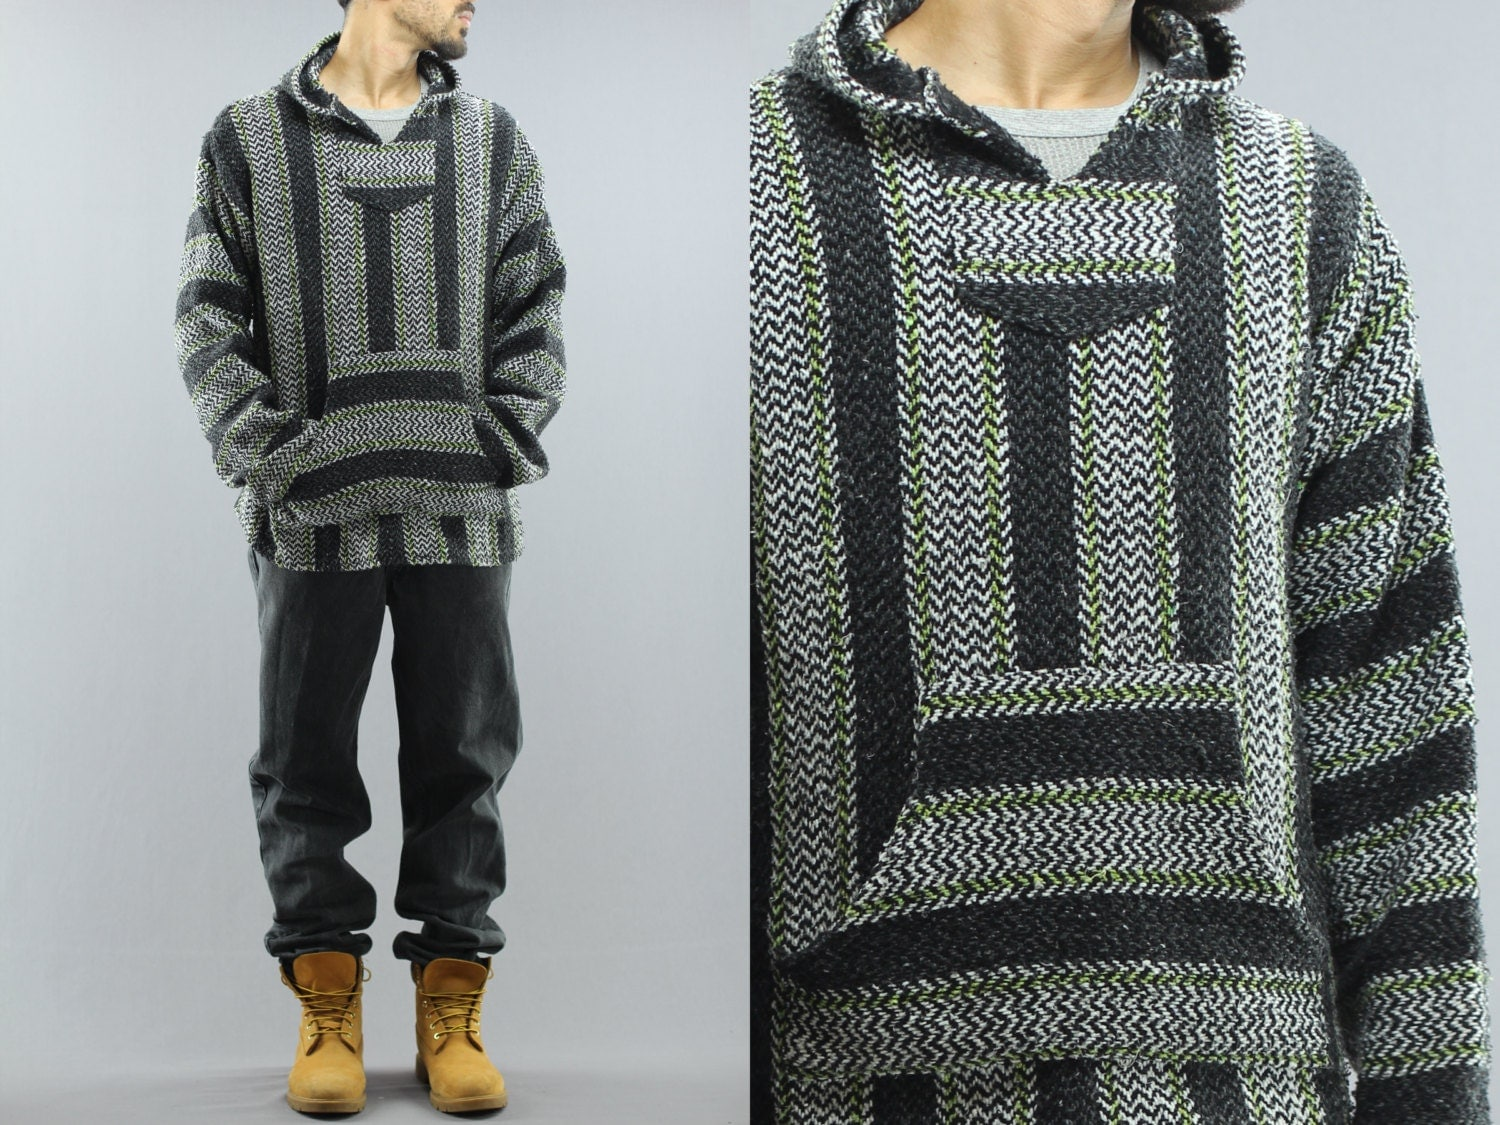 Woven Striped Pullover Baja Hoodie Sweater Unisex Adult